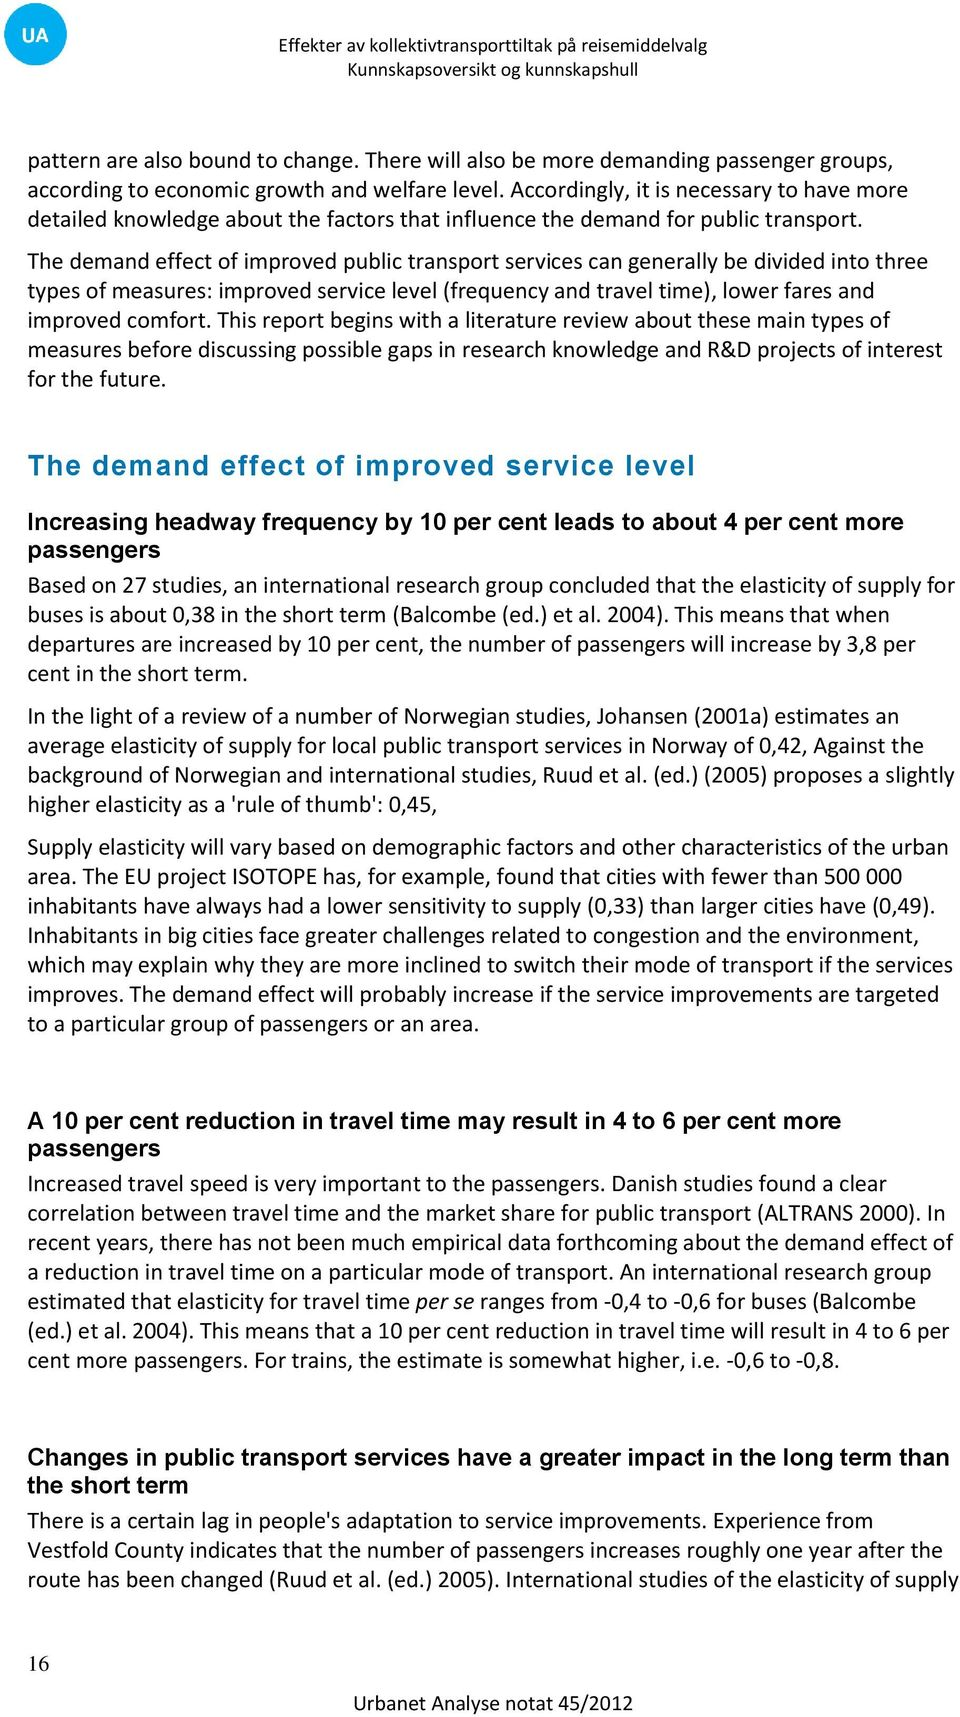 The demand effect of improved public transport services can generally be divided into three types of measures: improved service level (frequency and travel time), lower fares and improved comfort.